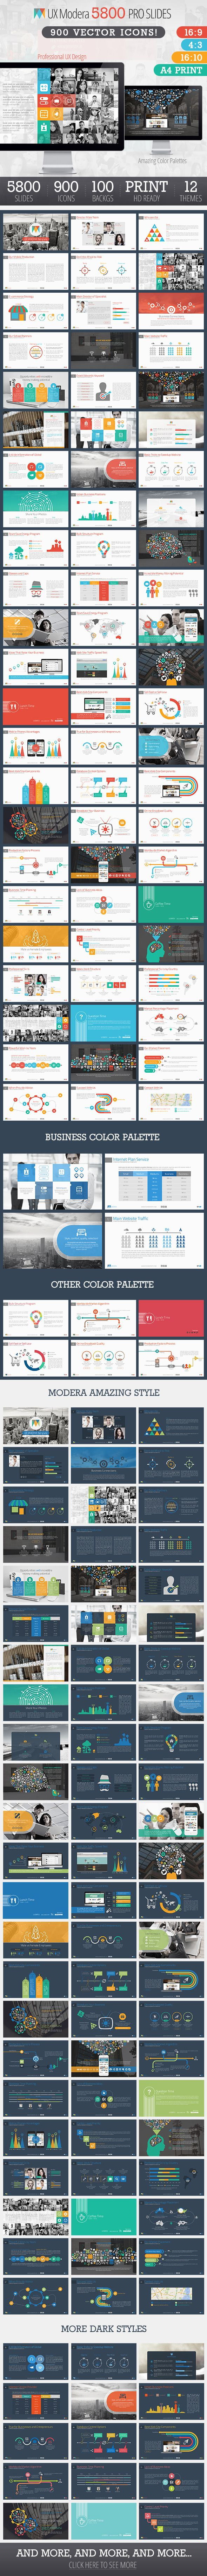 UX Modera Presentation Template PowerPoint Template / Theme / Presentation / Slides / Background / Power Point